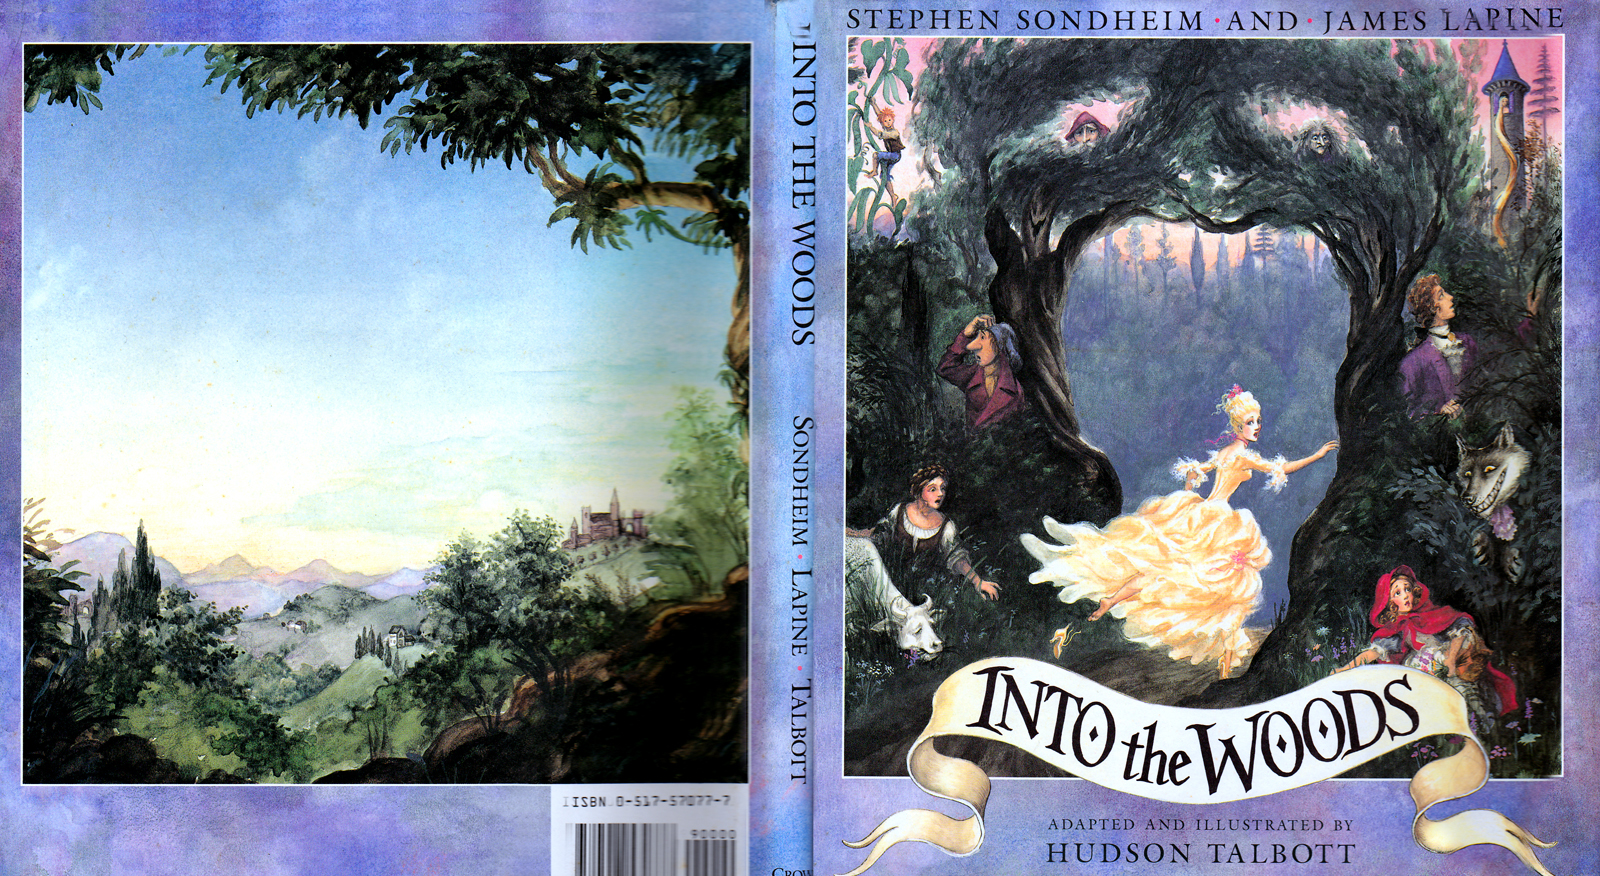 Into Woods ChildBook cover